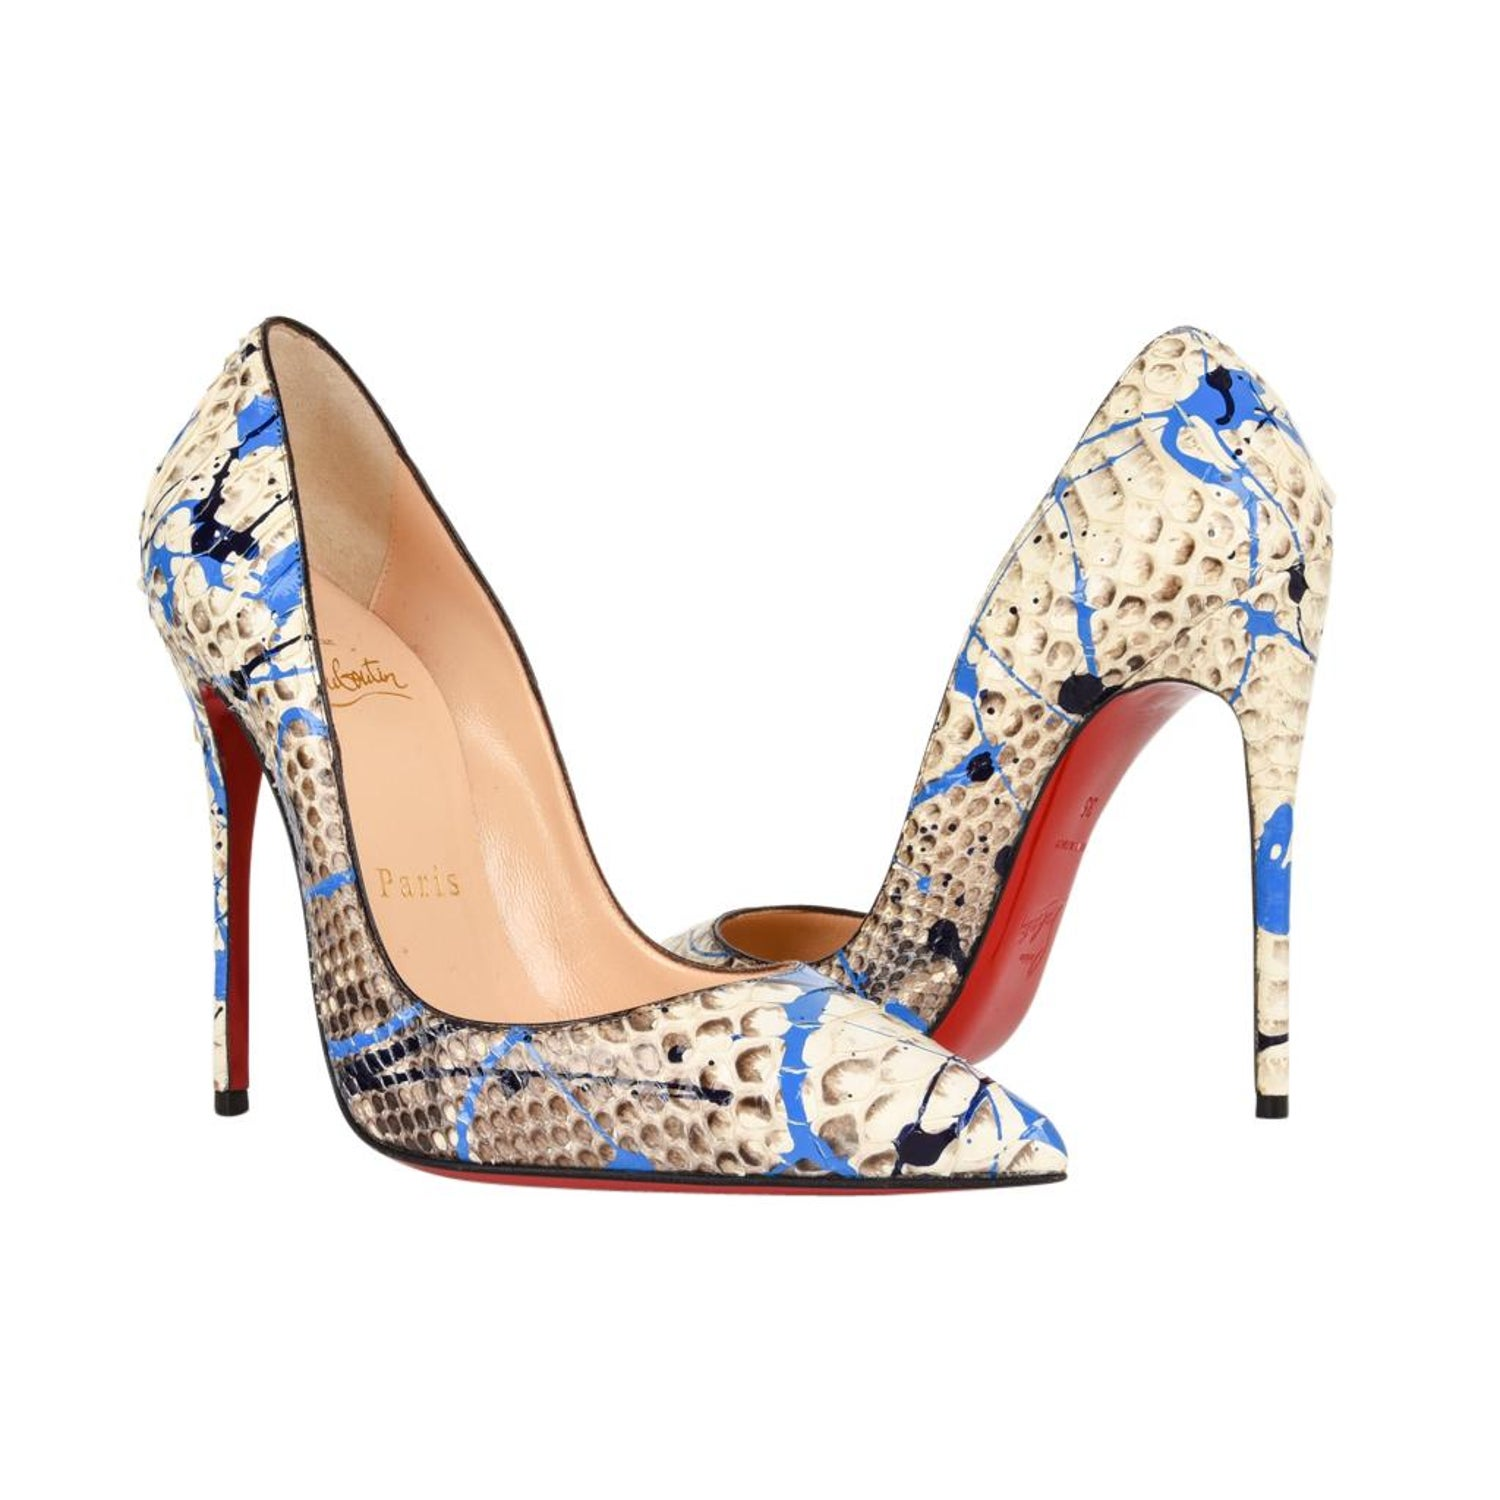 best website 9af31 5e635 Christian Louboutin Shoe Python Graffiti Pigalle 115mm 35 / 5 New